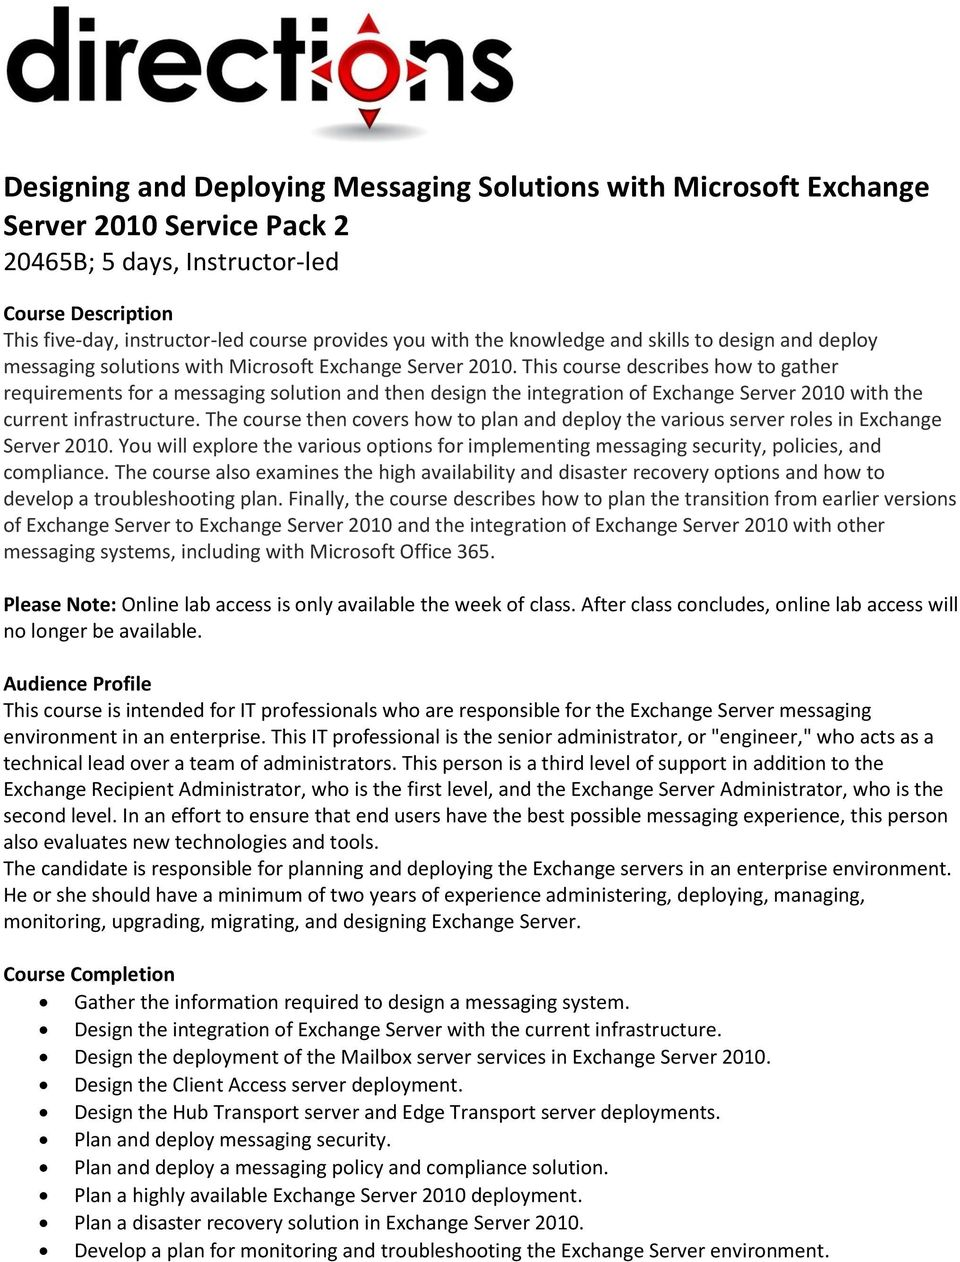 This course describes how to gather requirements for a messaging solution and then design the integration of Exchange Server 2010 with the current infrastructure.